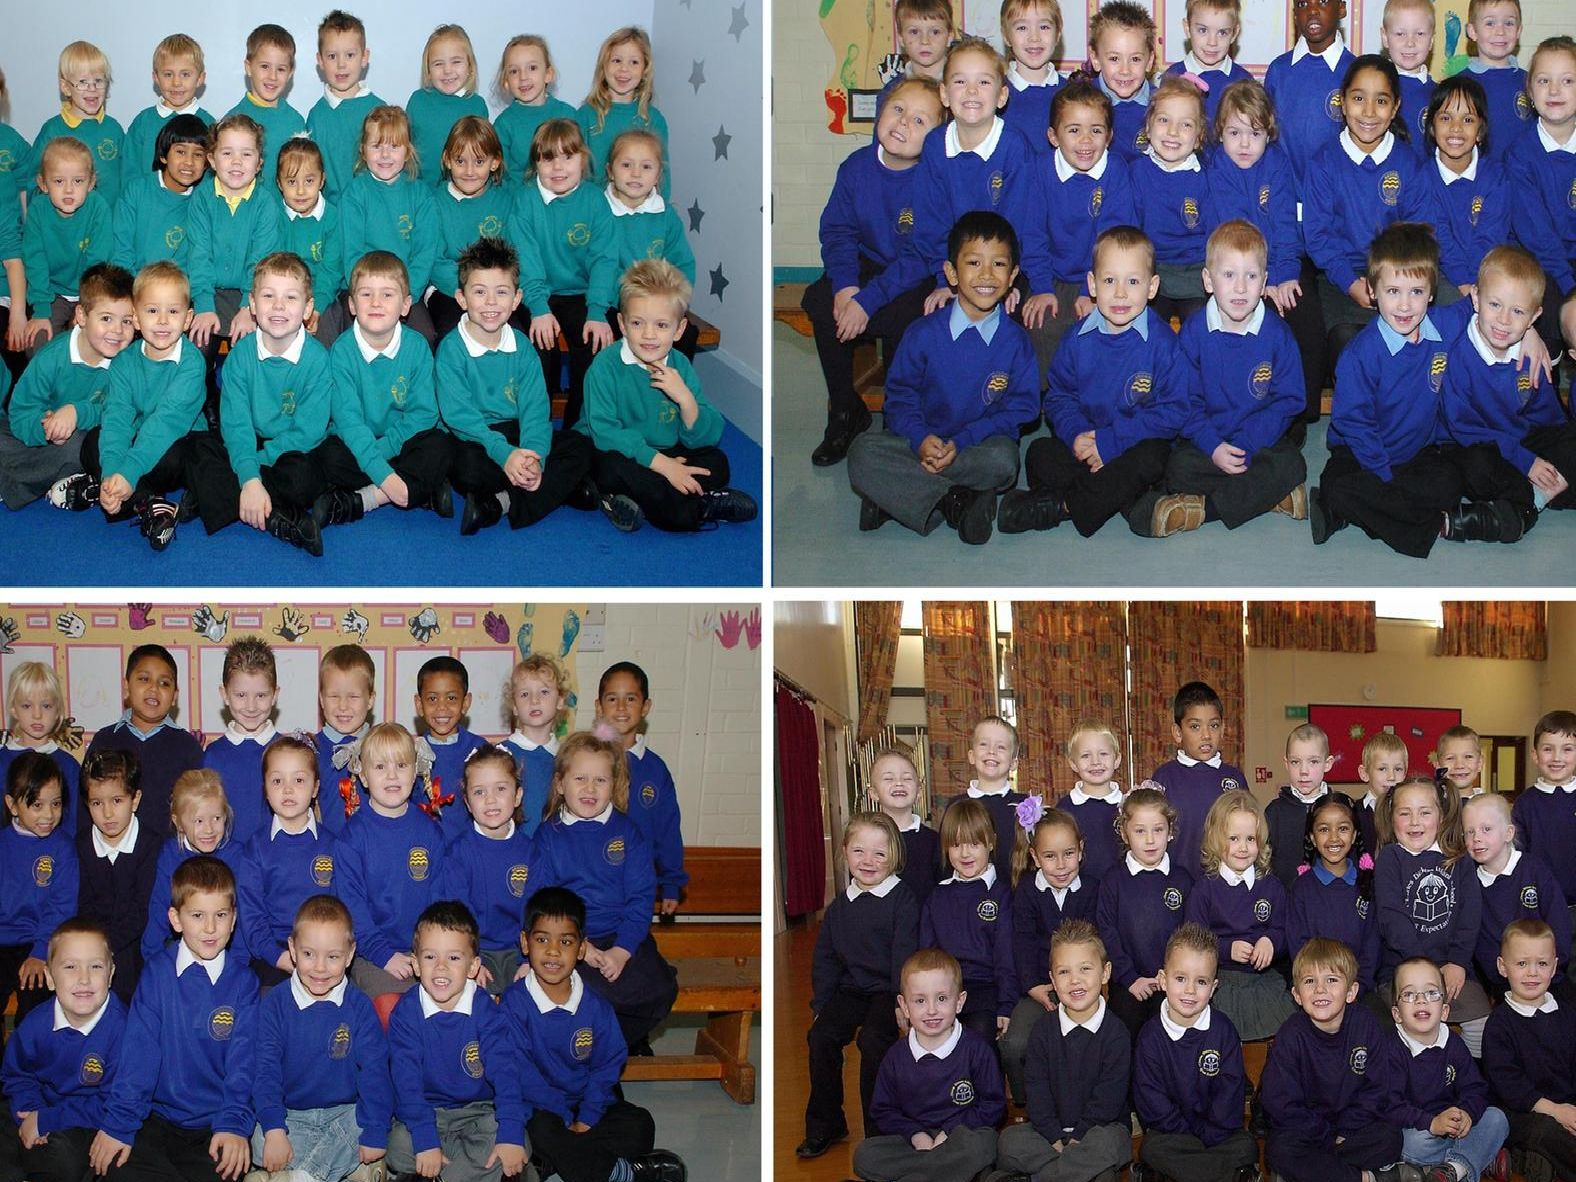 Reception class from 00s